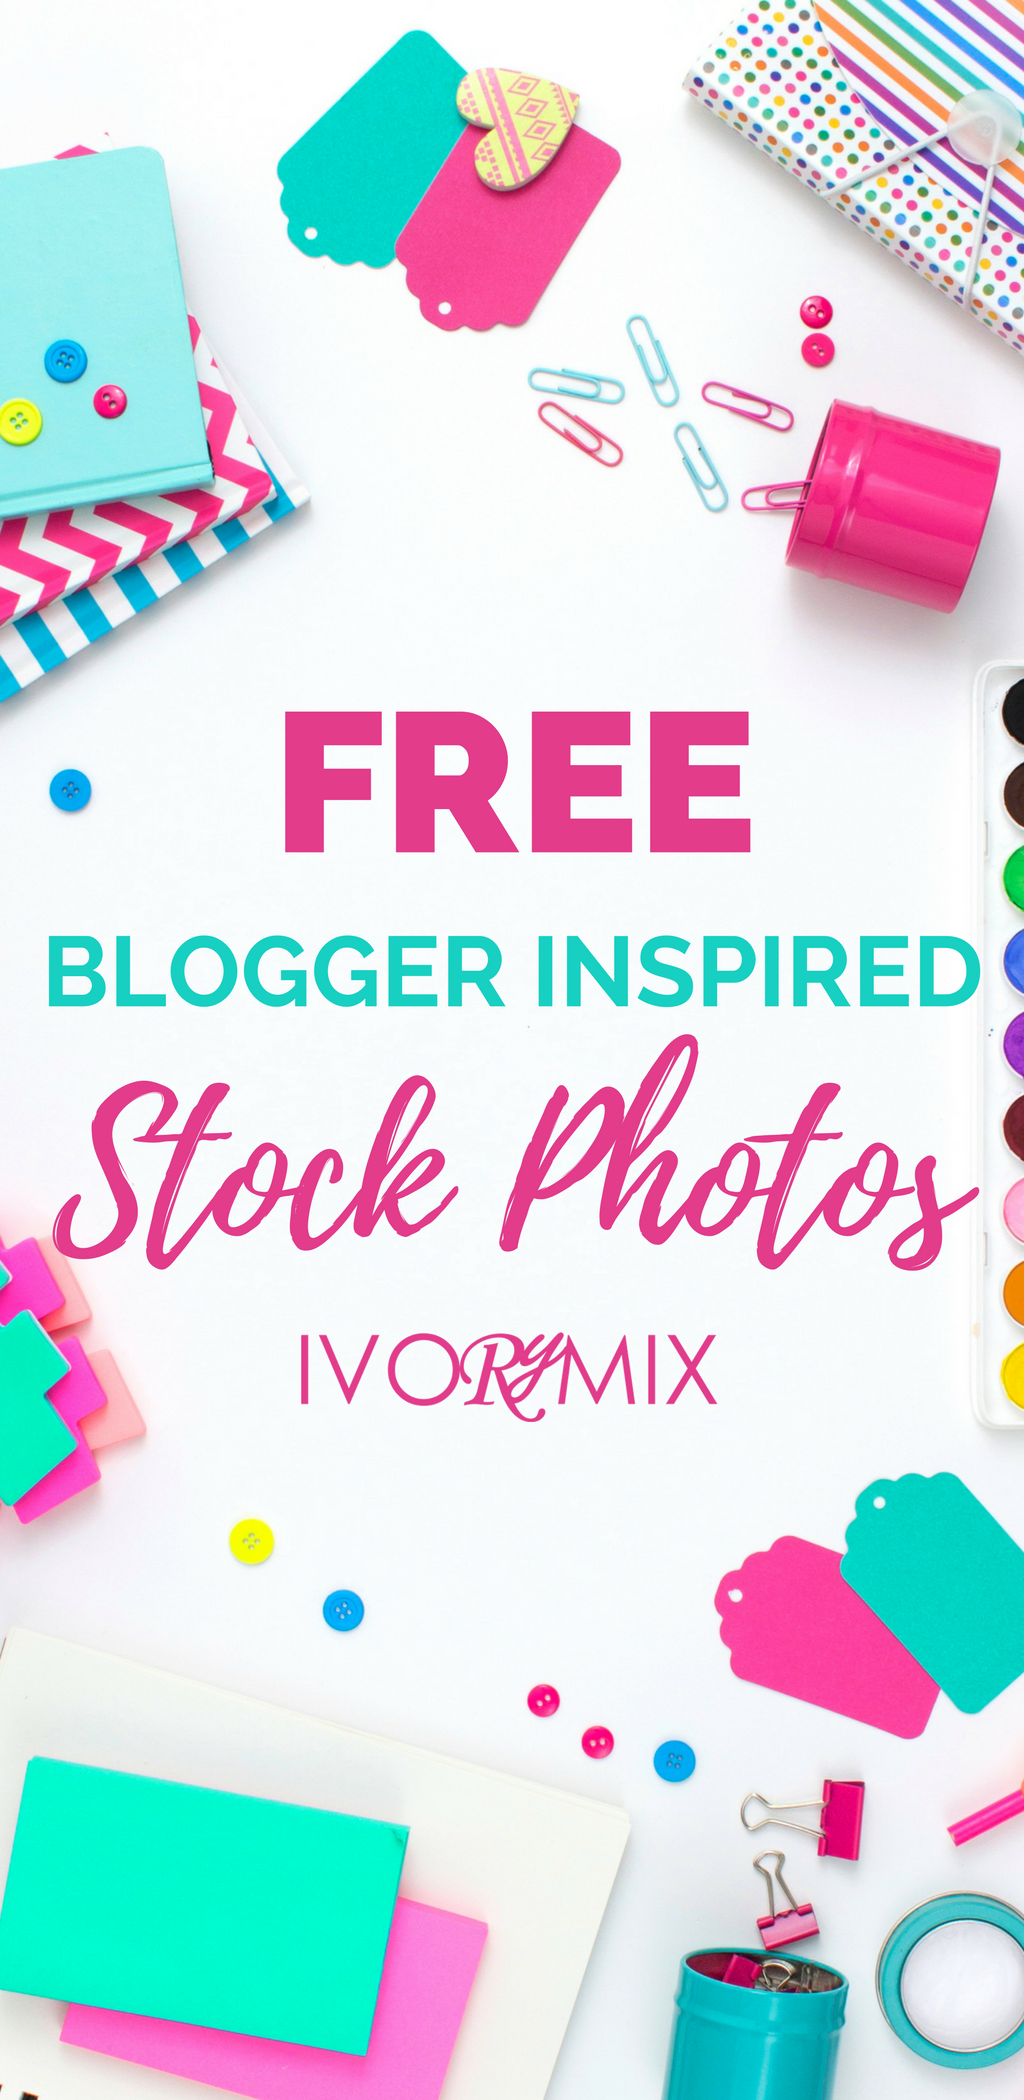 Free blog stock photos, fitness photos, and tech photos for your blog